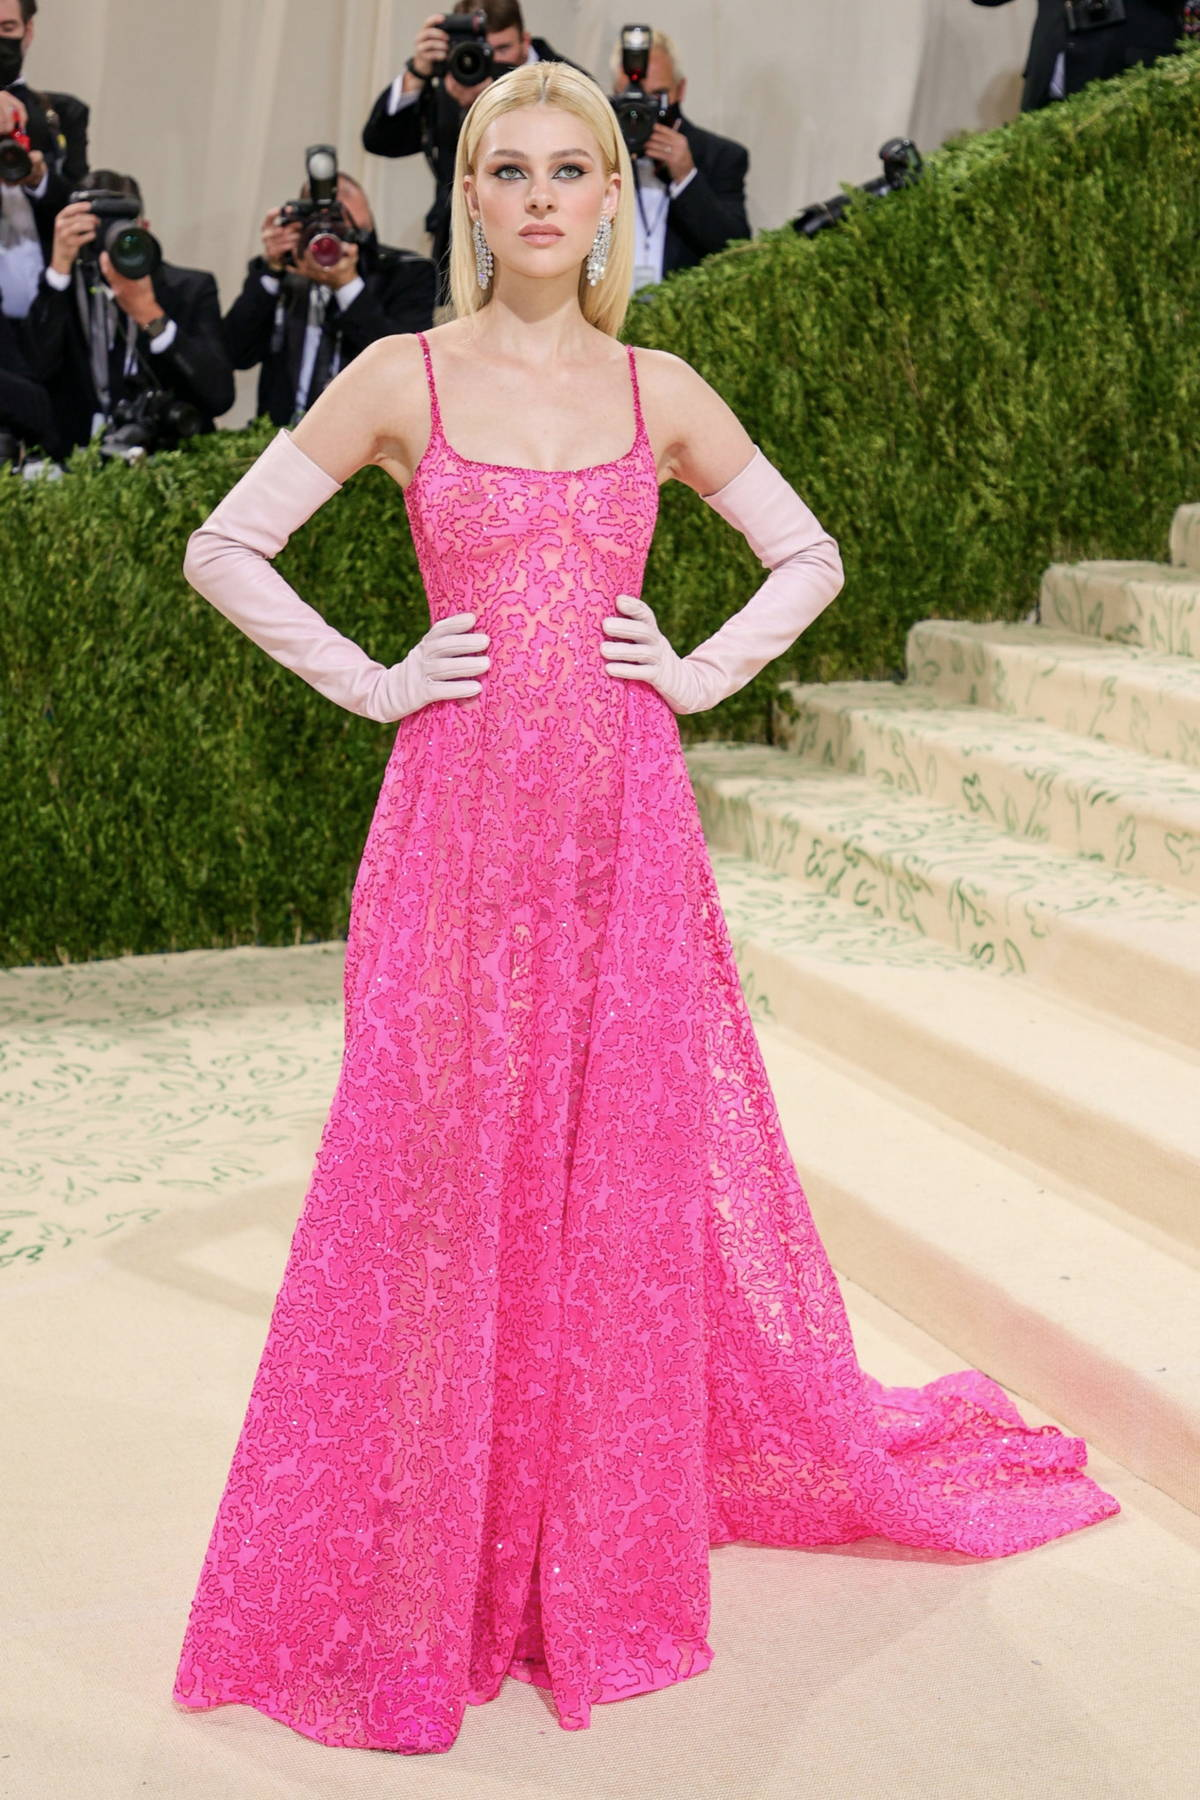 Nicola Peltz attends The Met Gala Celebrating In America: A Lexicon Of Fashion at Metropolitan Museum of Art in New York City